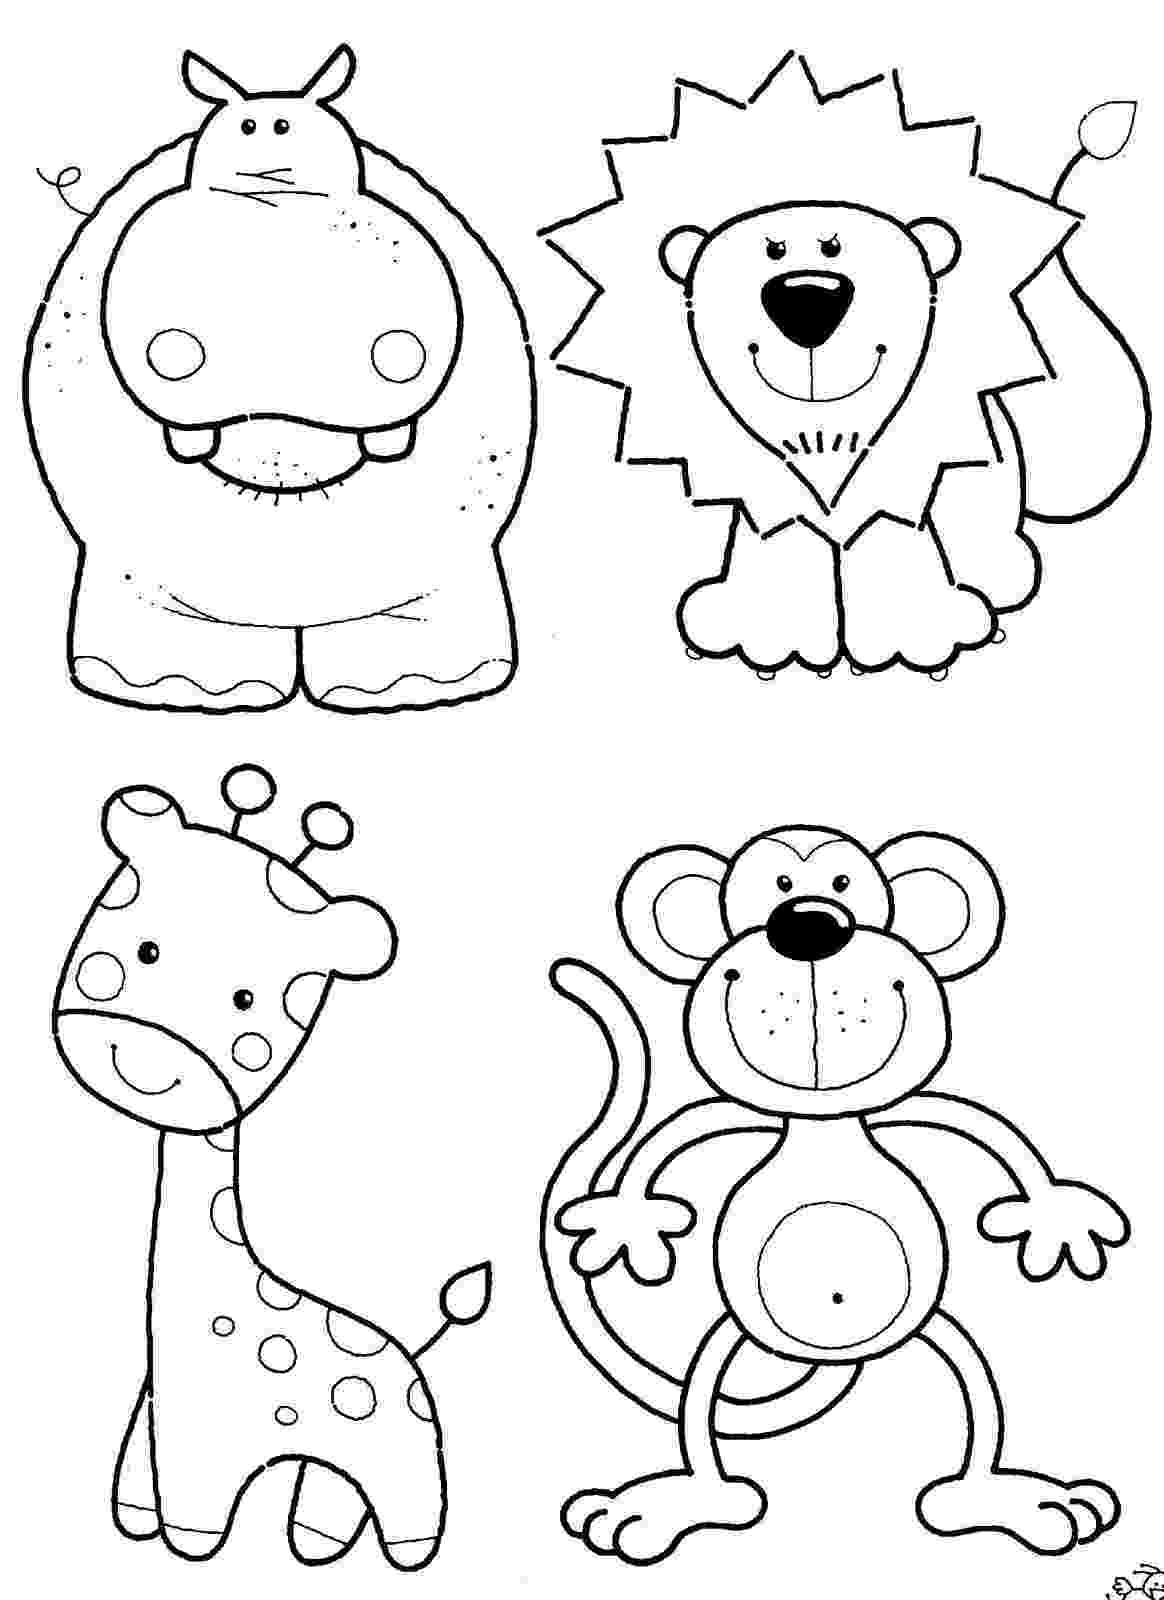 childrens animal colouring books ten animals colouring pages line drawings pinterest books animal colouring childrens